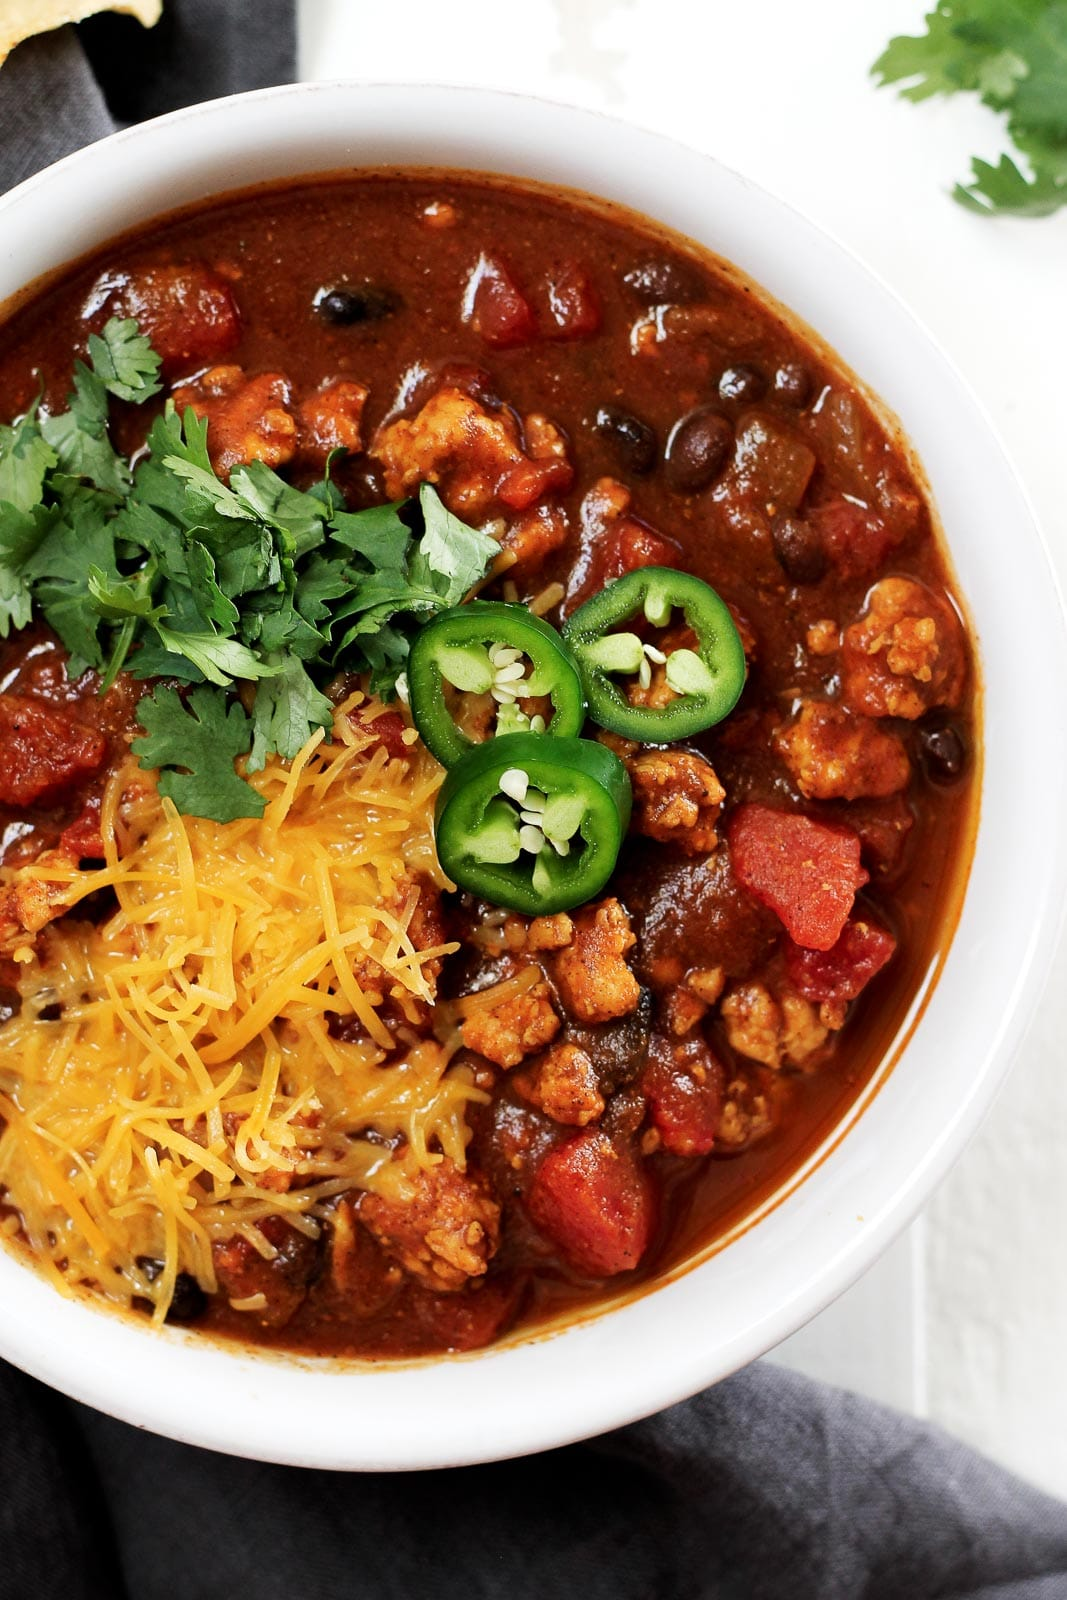 Slow Cooker Black Bean Pumpkin Turkey Chili from ambitiouskitchen.com on nourishedplanner.com